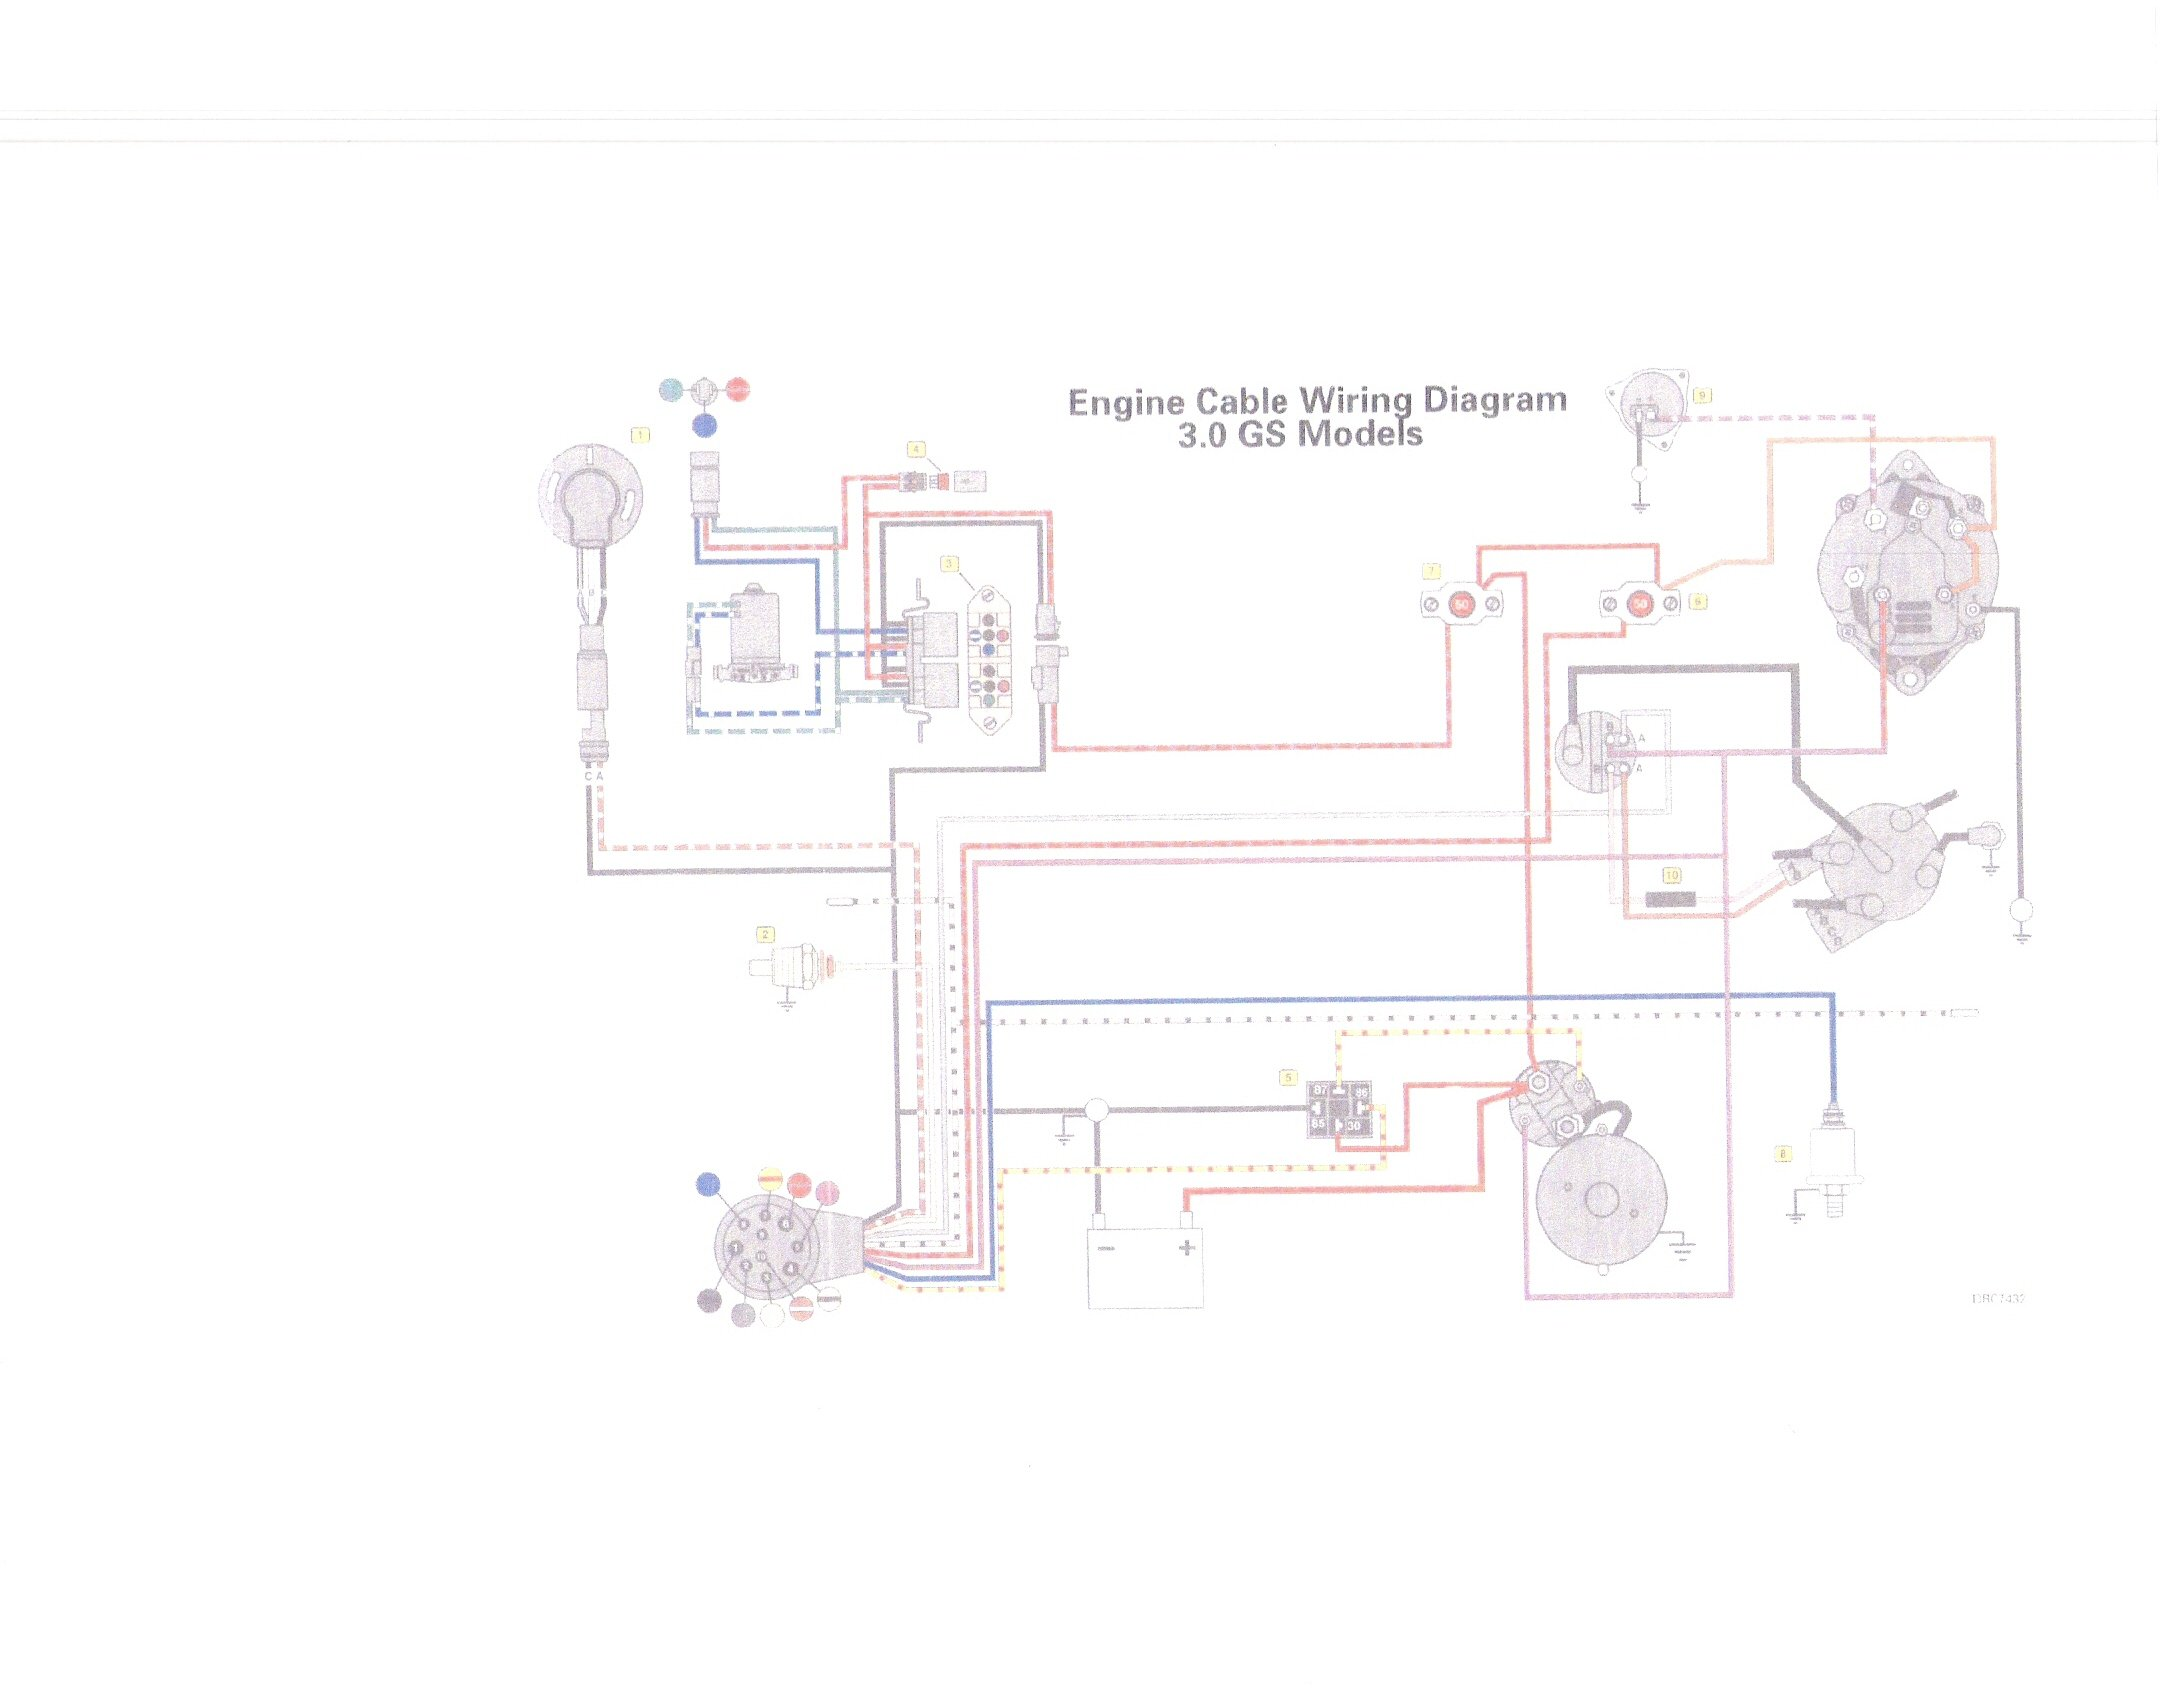 volvo penta 5 7 gs wiring diagram   33 wiring diagram